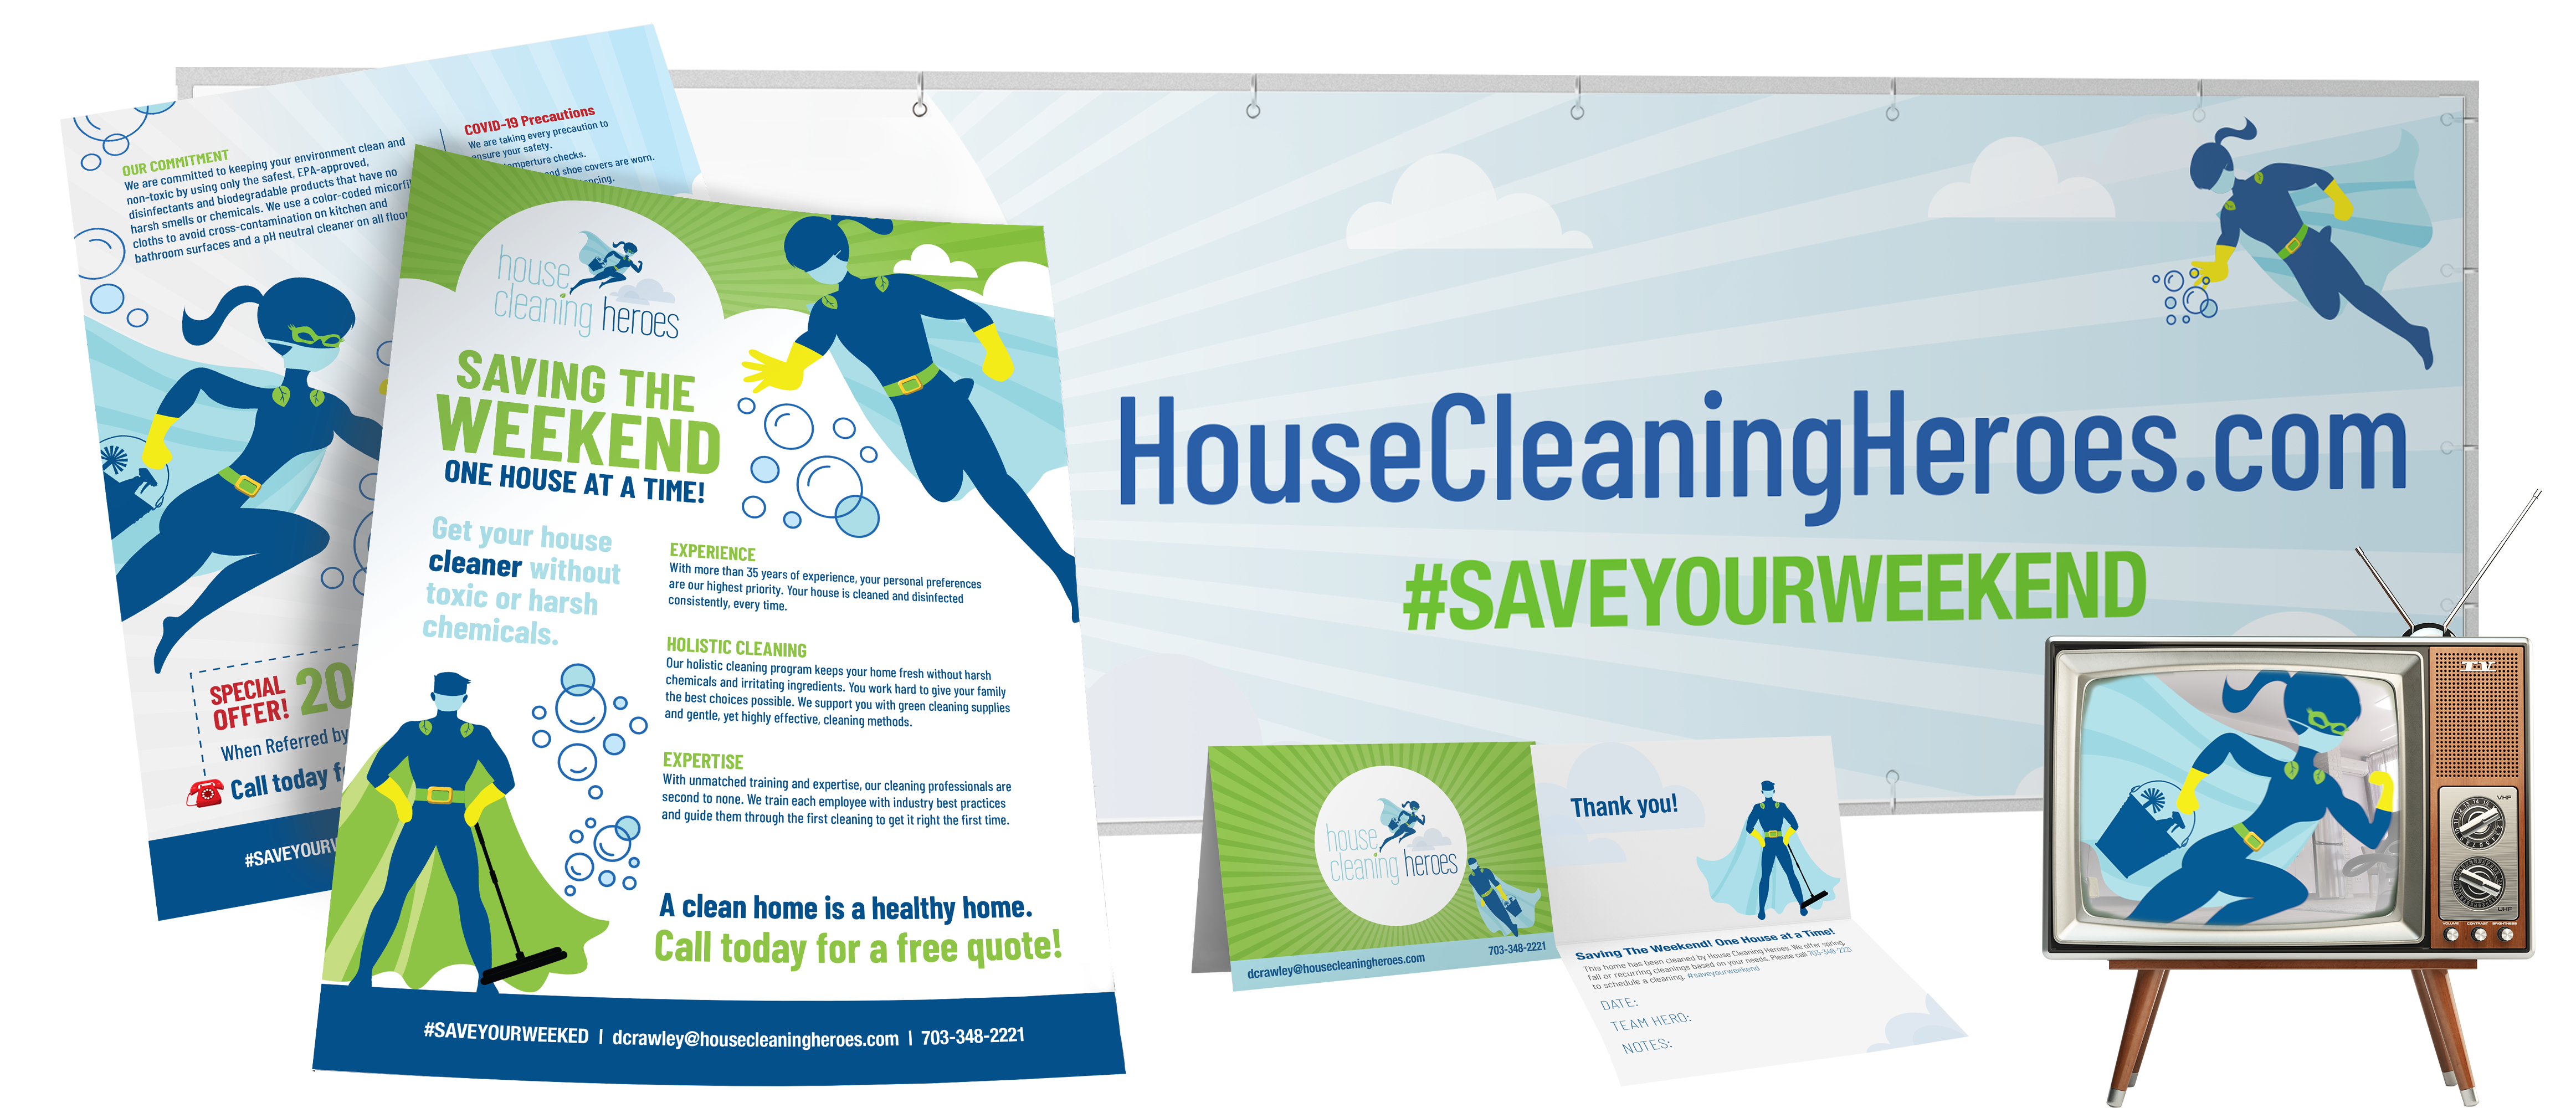 House Cleaning Heroes | Case Study